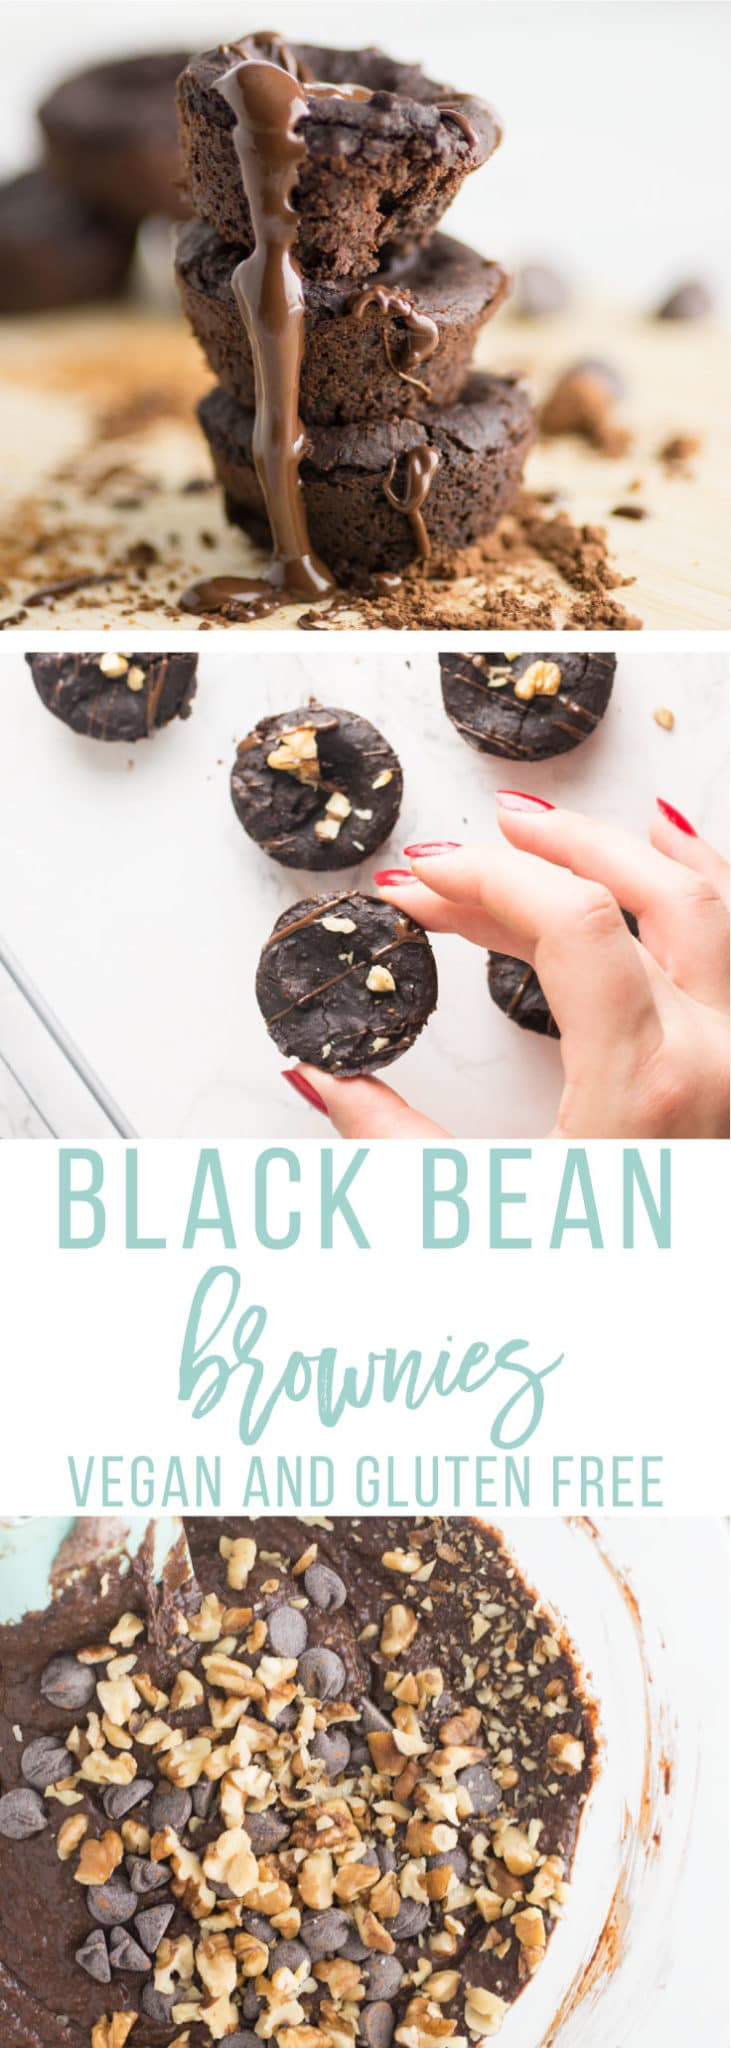 Vegan Black Bean Brownies -- Introducing black bean brownies that are a healthy spin on the chocolatey dessert. This brownie recipe is totally gluten-free thanks to the black beans. You won\'t believe these brownies are vegan, gluten-free, AND refined sugar-free because these bite-sized brownies are so fudgy, chocolatey, and decadent! #vegan #baking #healthy #desserts #cleaneating | mindfulavocado